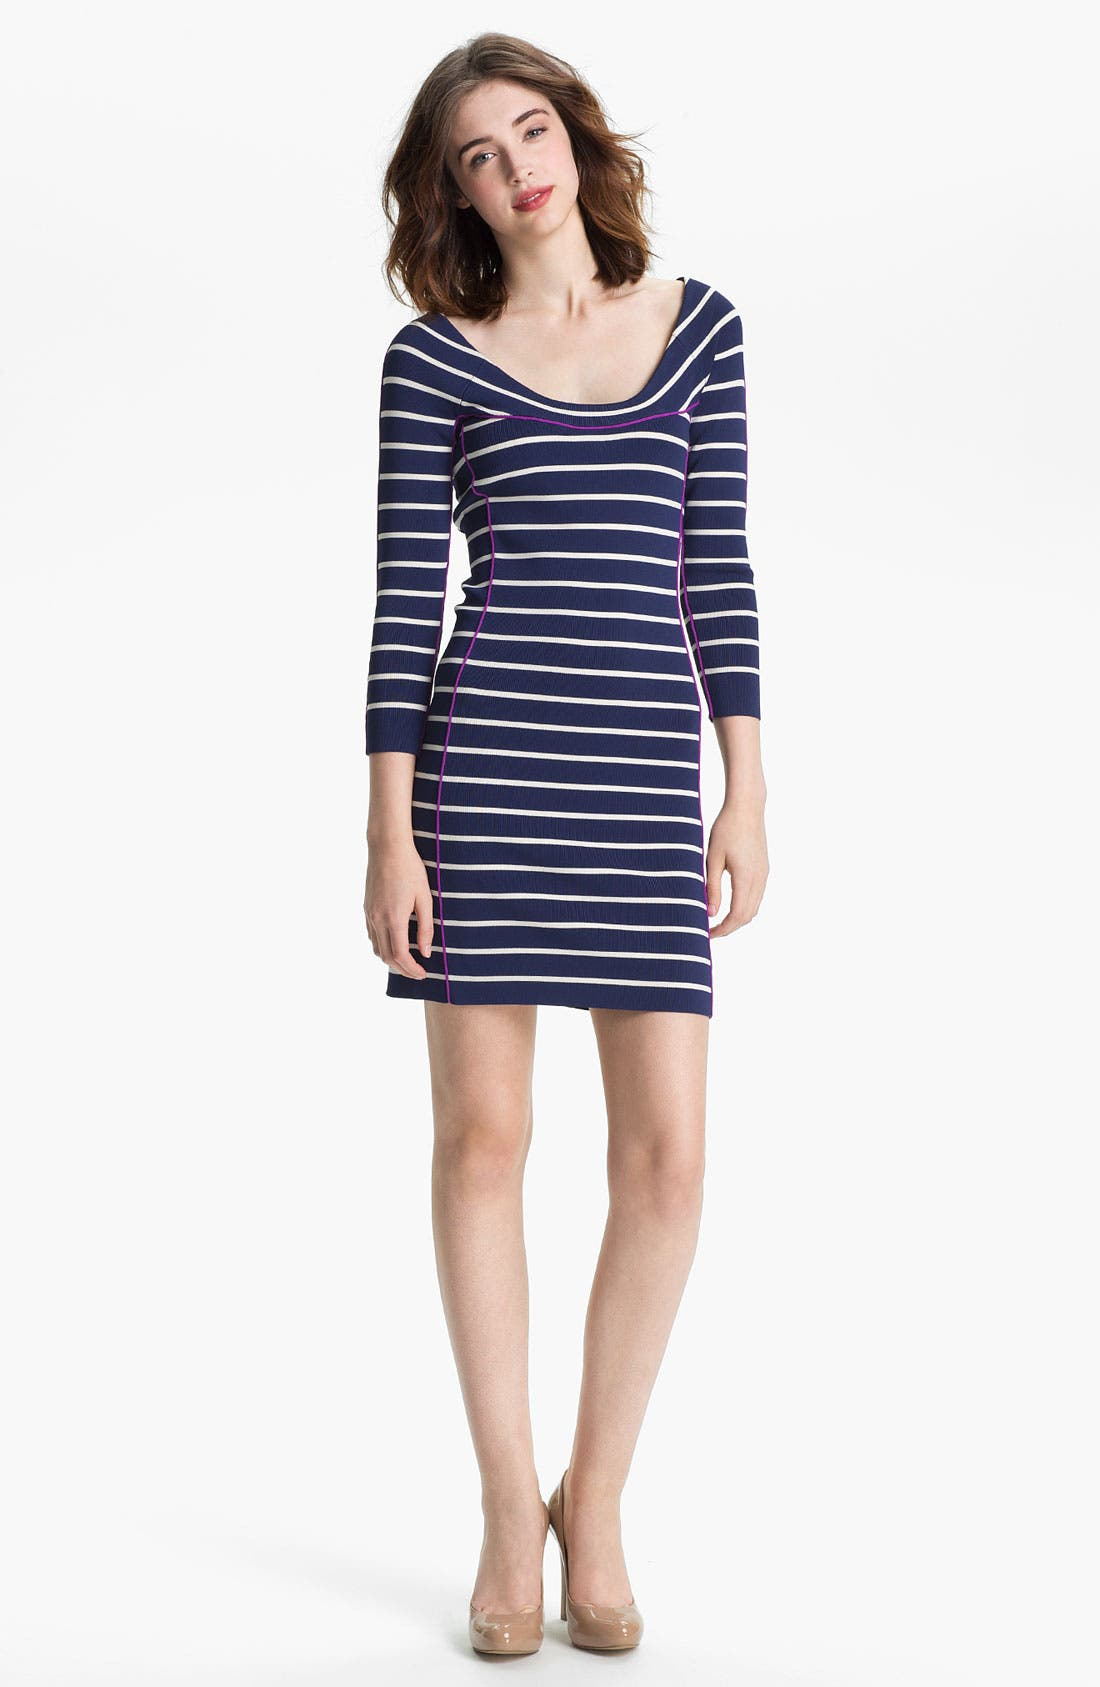 Alternate Image 1 Selected - Jessica Simpson Contrast Trim Stripe Knit Sheath Dress